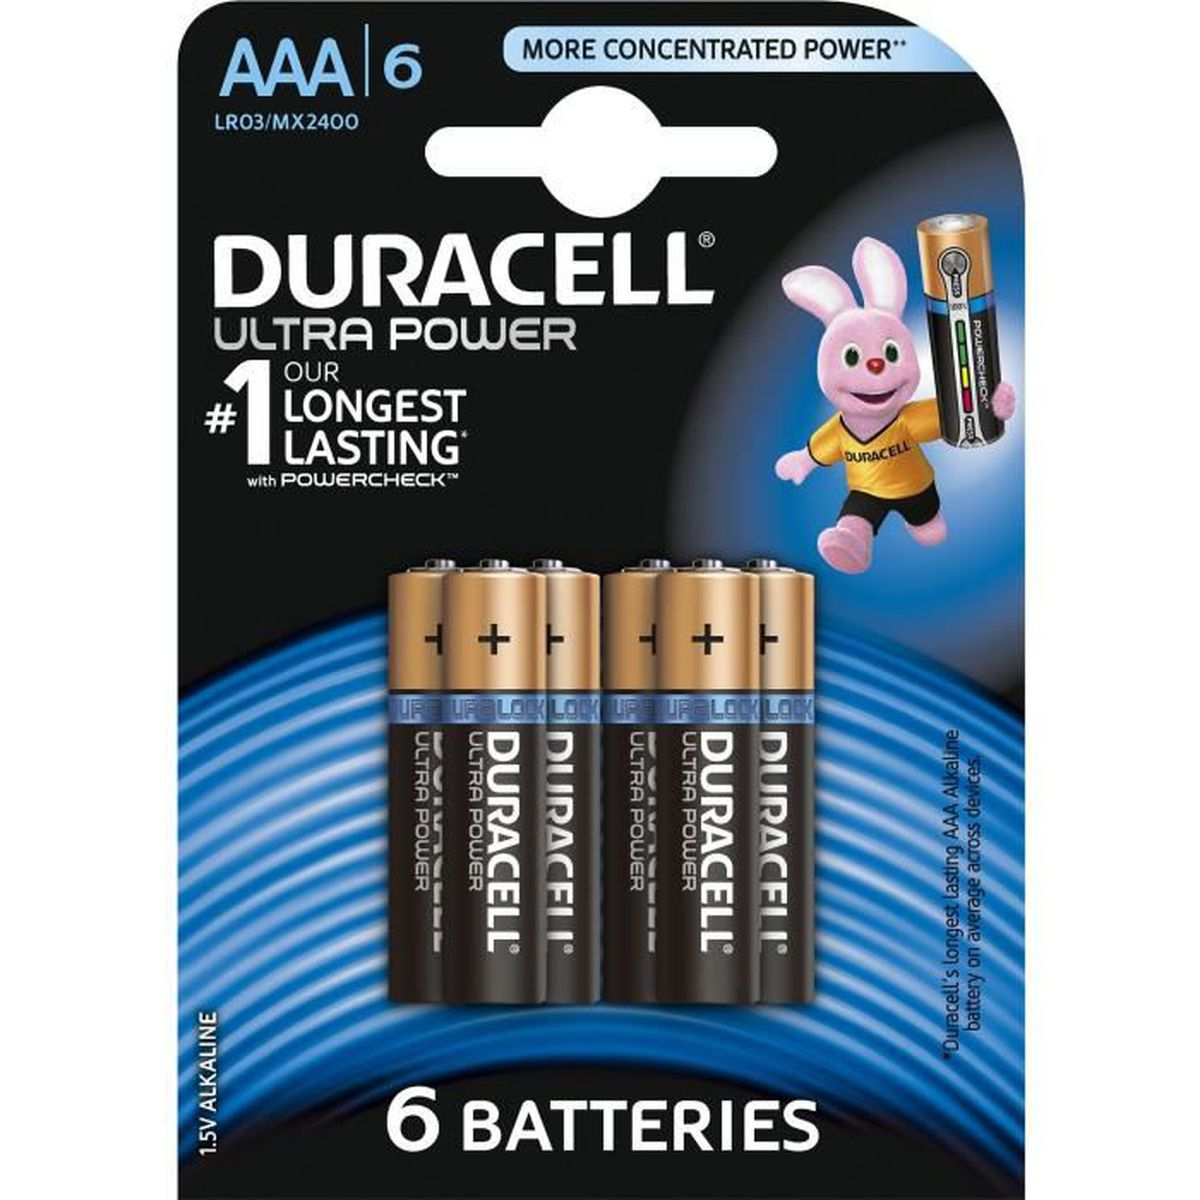 pile duracell aaa x6 ultra power lr03 achat vente piles soldes cdiscount. Black Bedroom Furniture Sets. Home Design Ideas